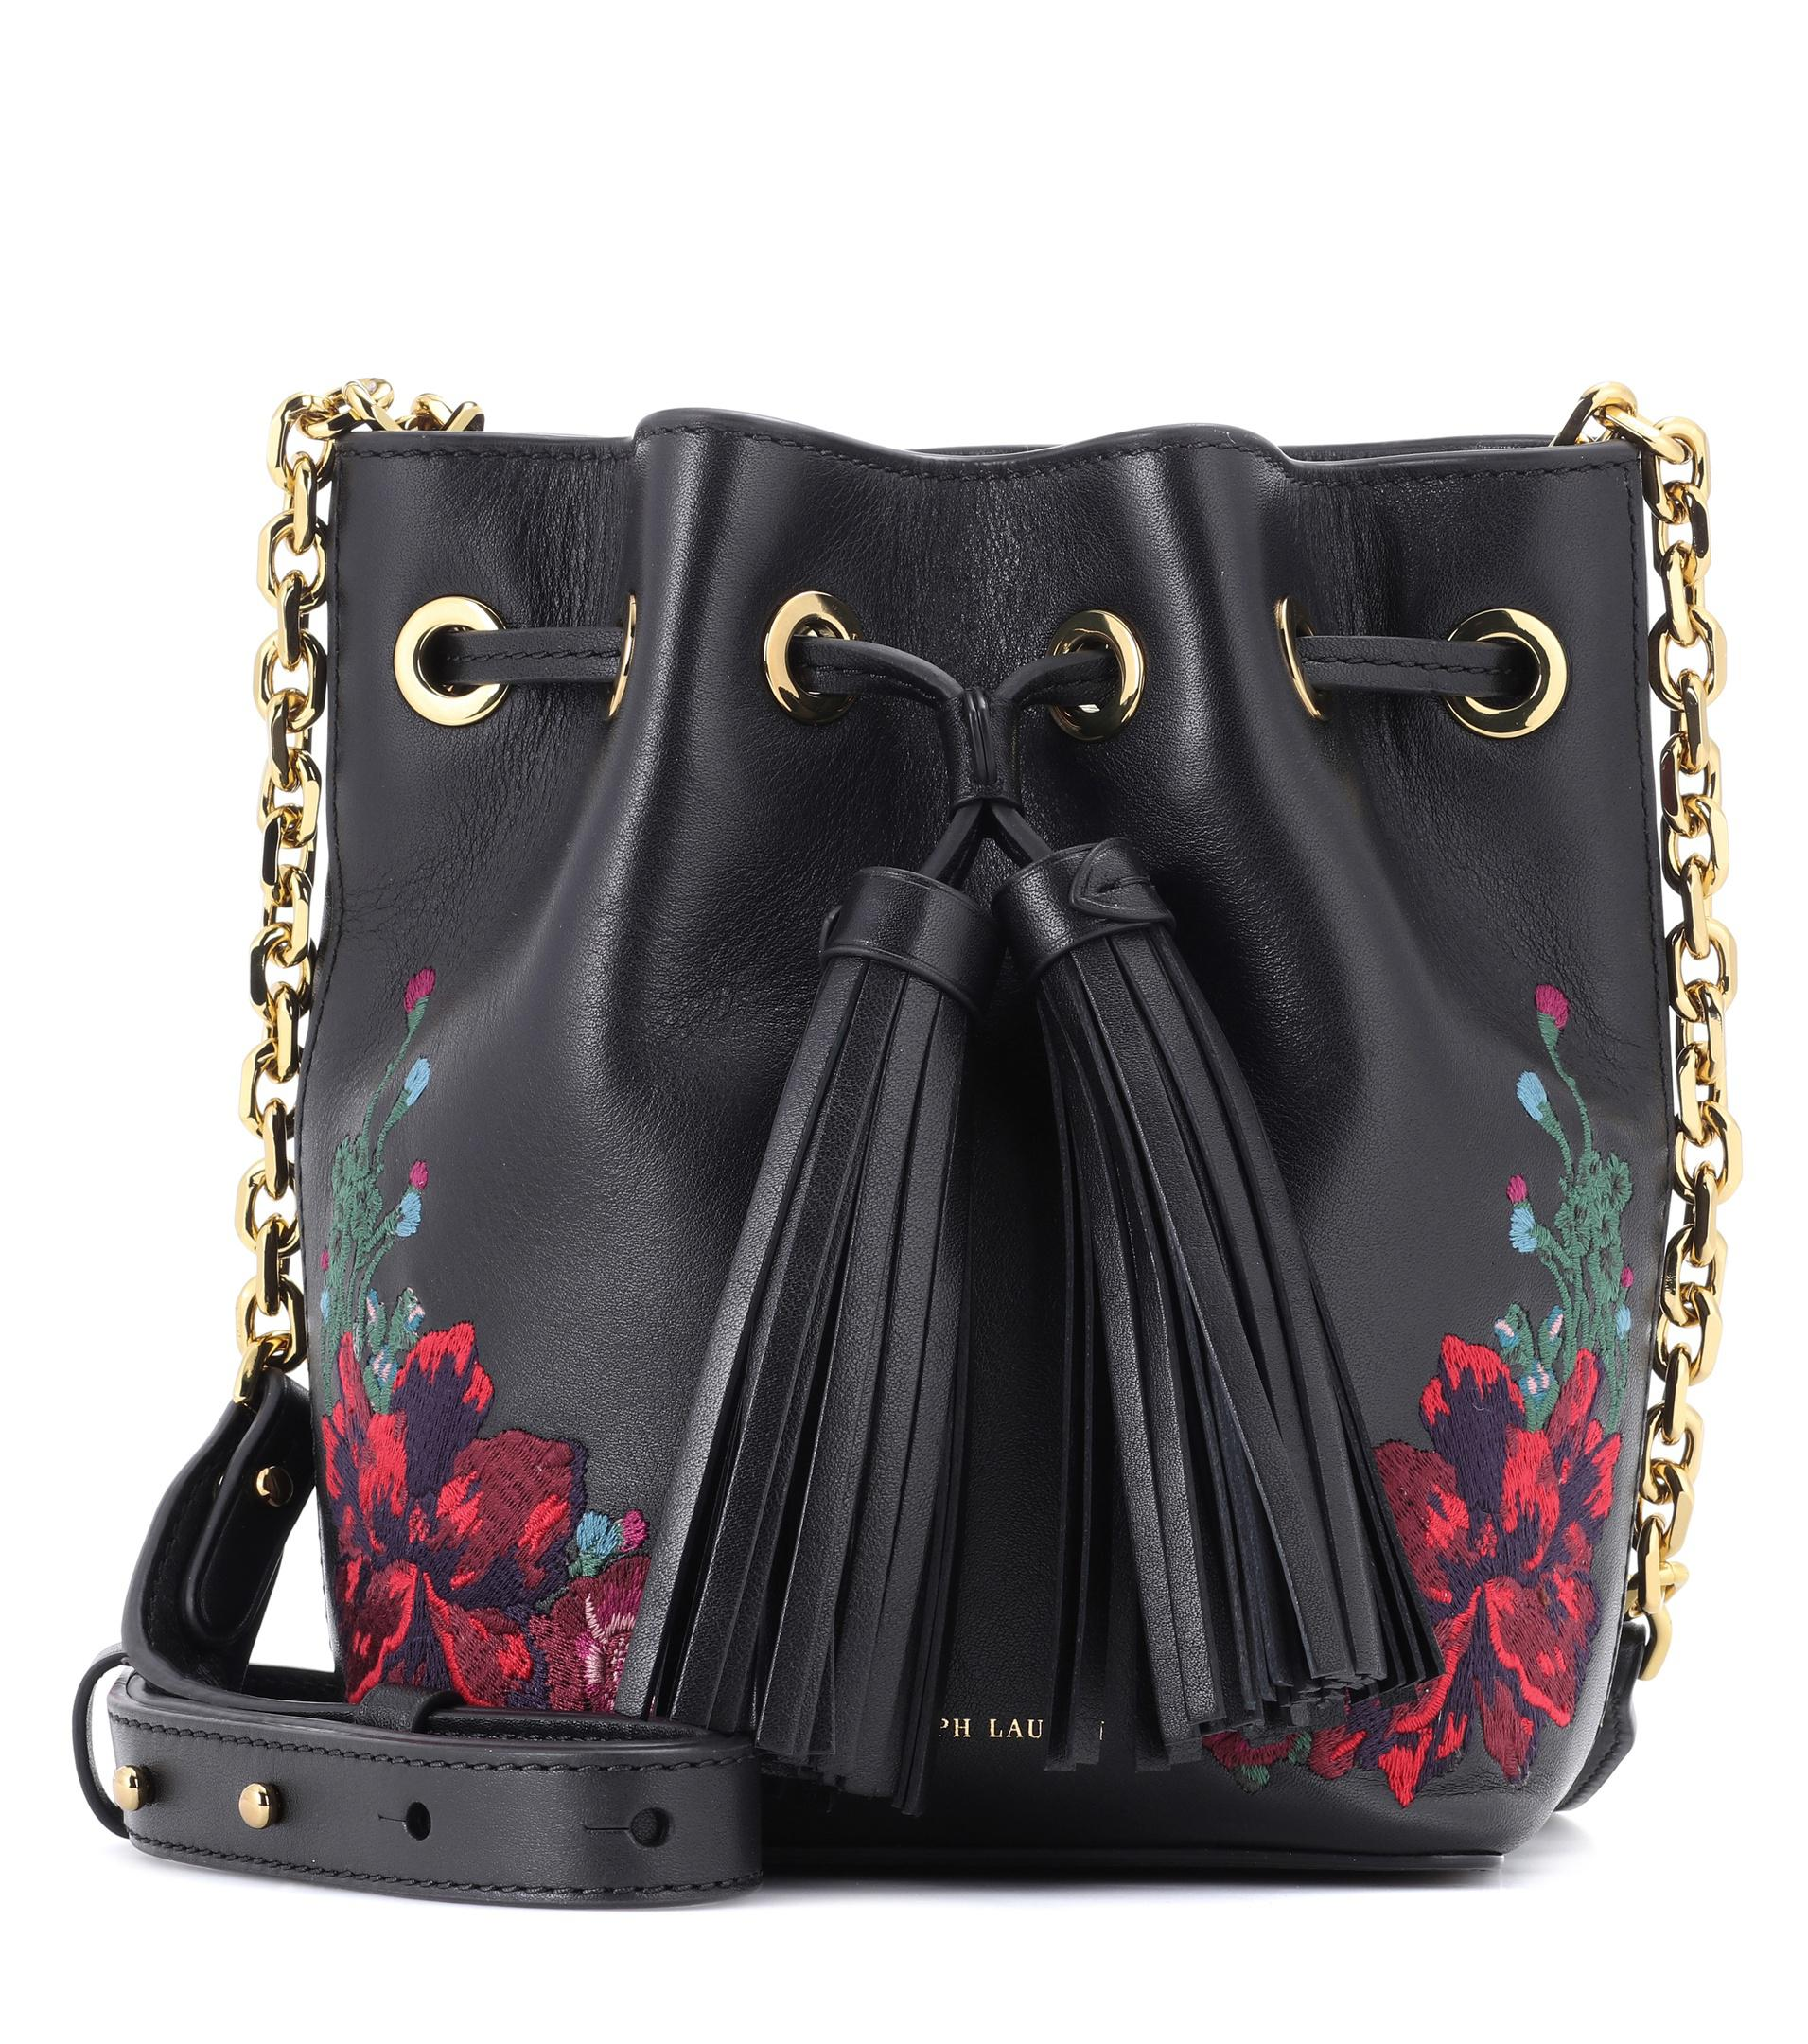 Polo Ralph Lauren Embroidered Leather Bucket Bag in Black - Lyst b0343adfd46e0